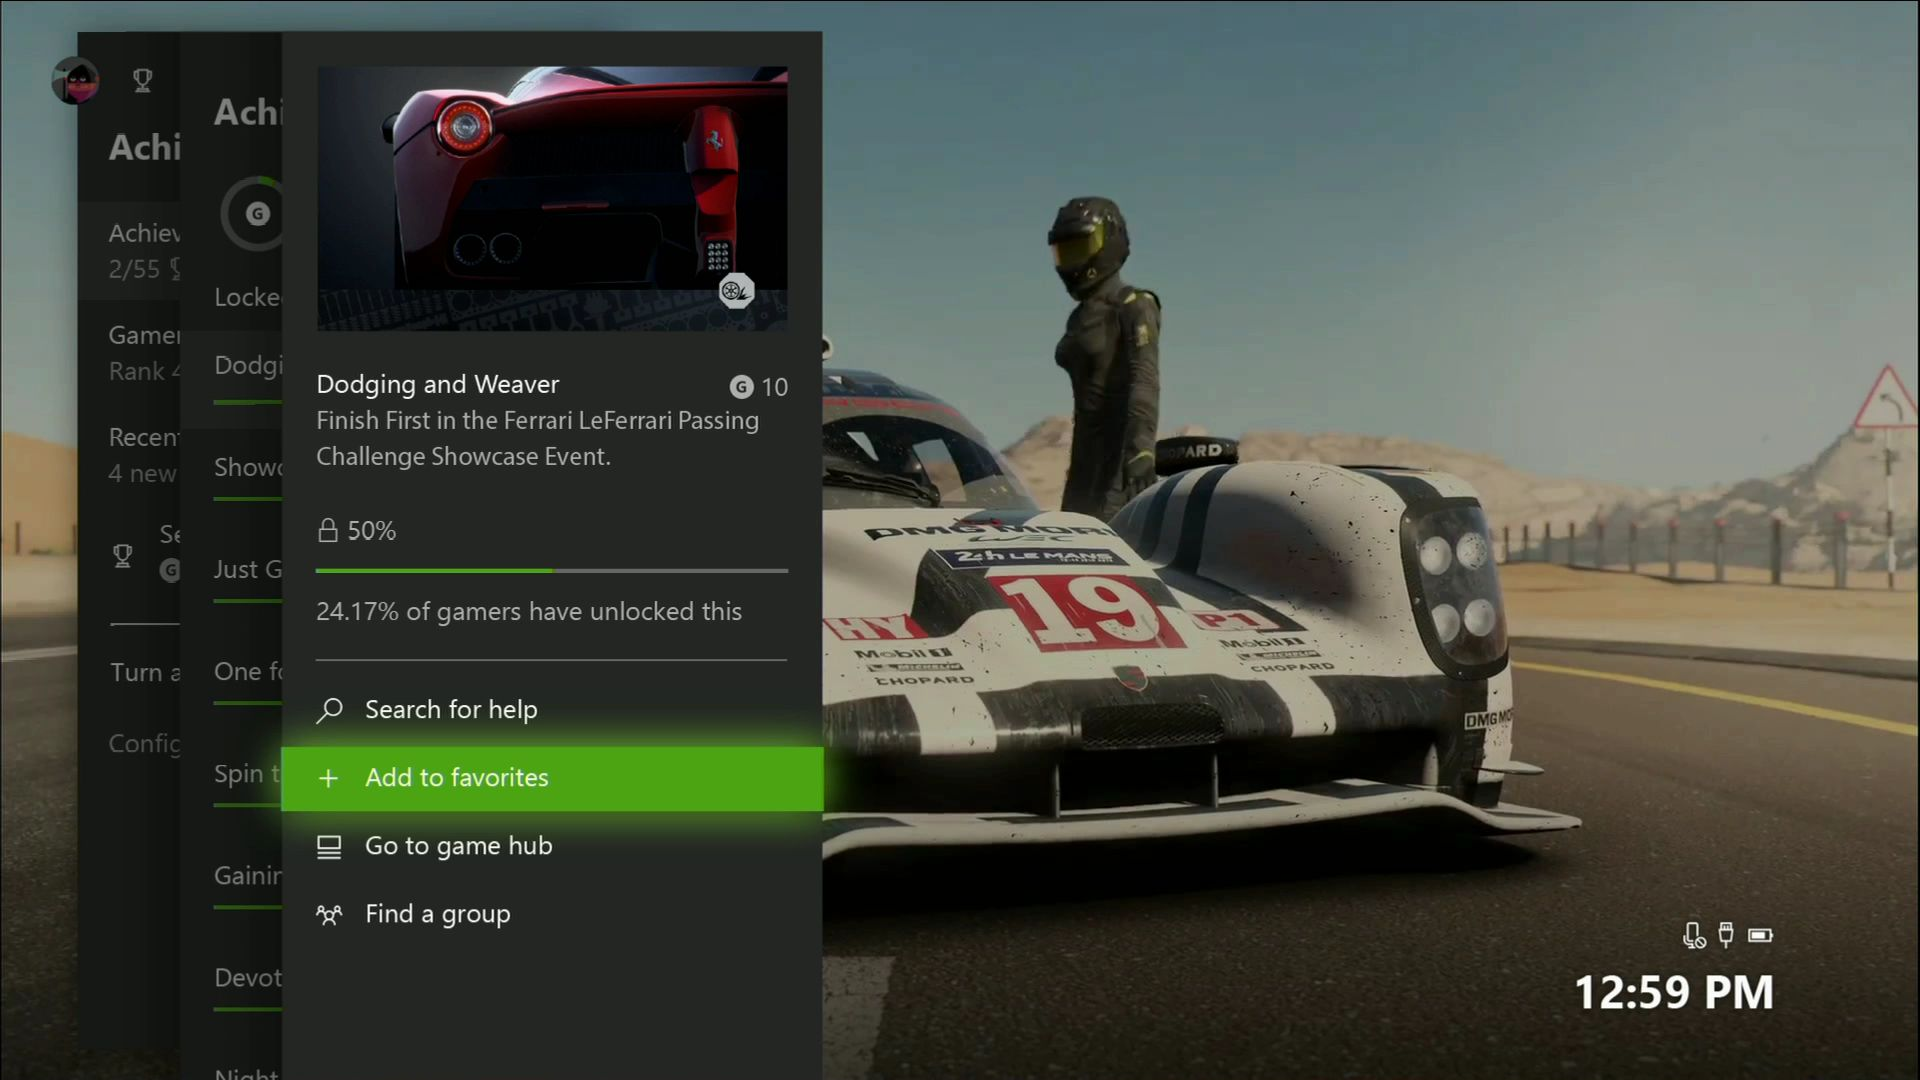 Xbox one transfer and setup settings will make it easy